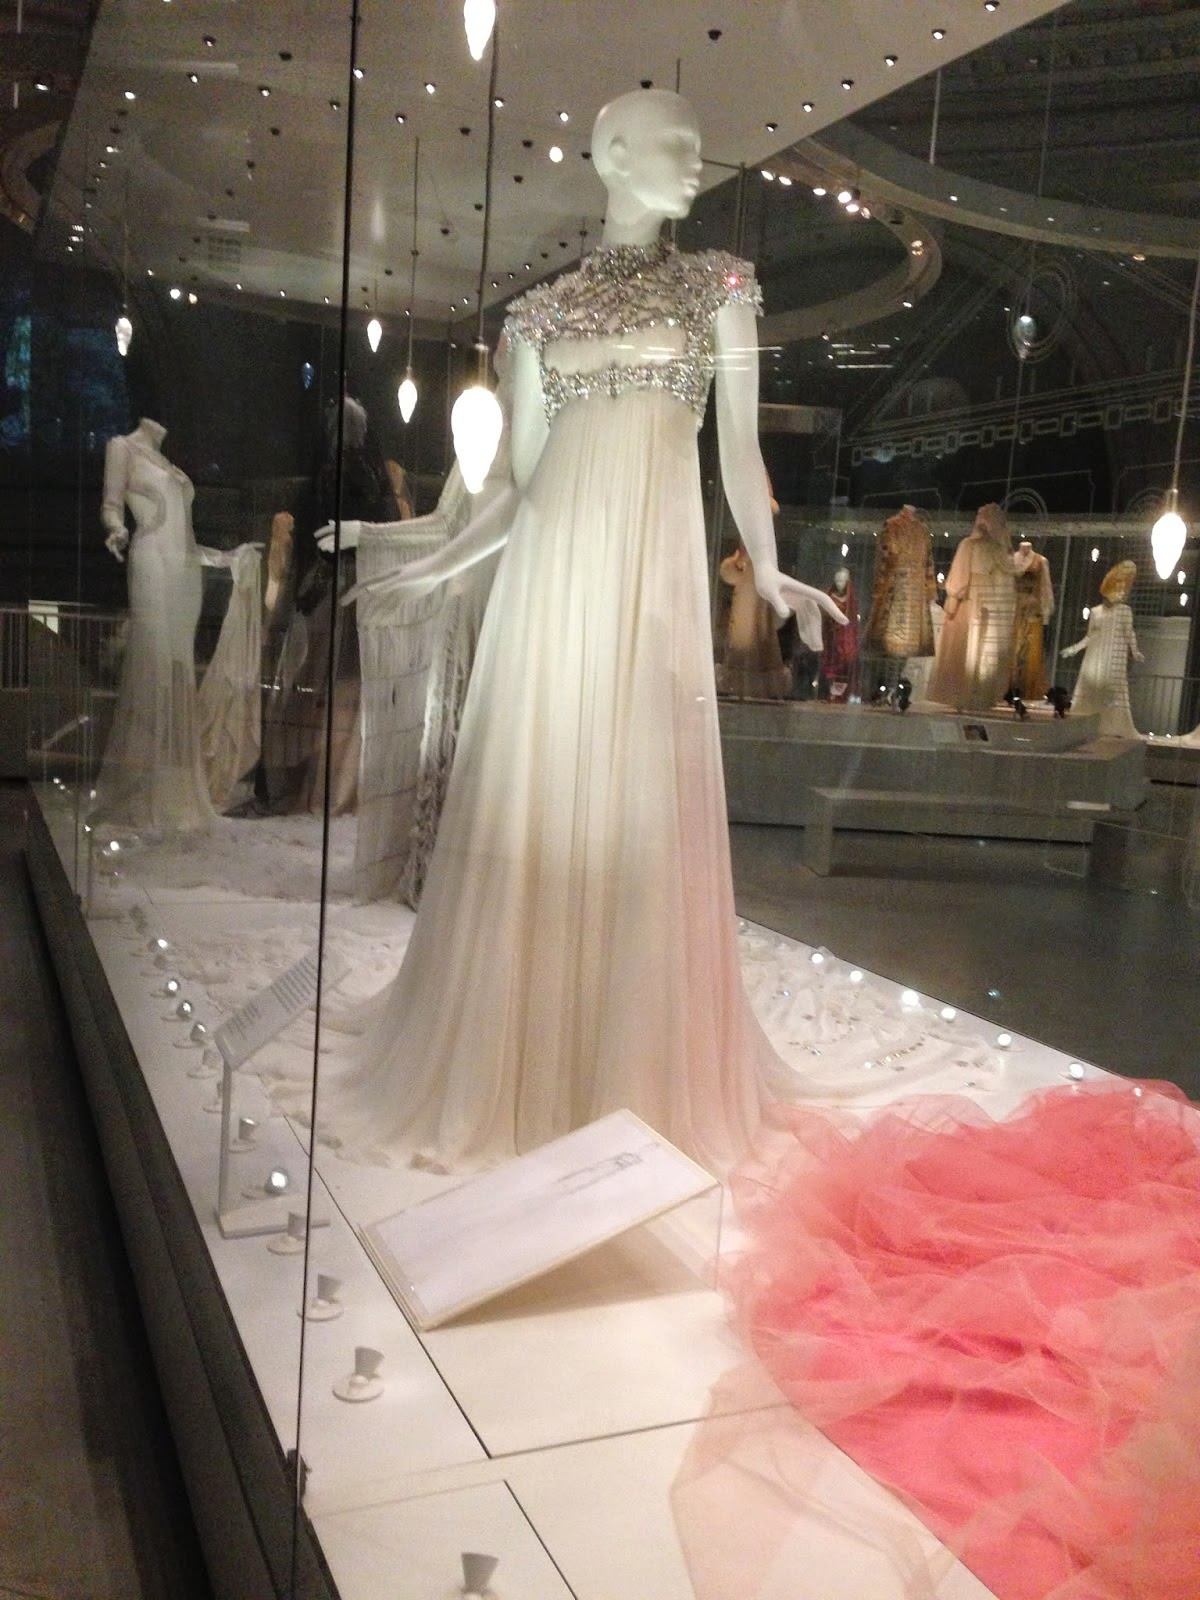 fbloggers, fashion, fashionbloggers, weddings, weddingfashion, v&a, victoriaandalbertmuseum, victoriaandalbertweddingdressexhibition, weddingdressexhibition, london, kensington, viviennewestwood, gwenstefani, katemoss